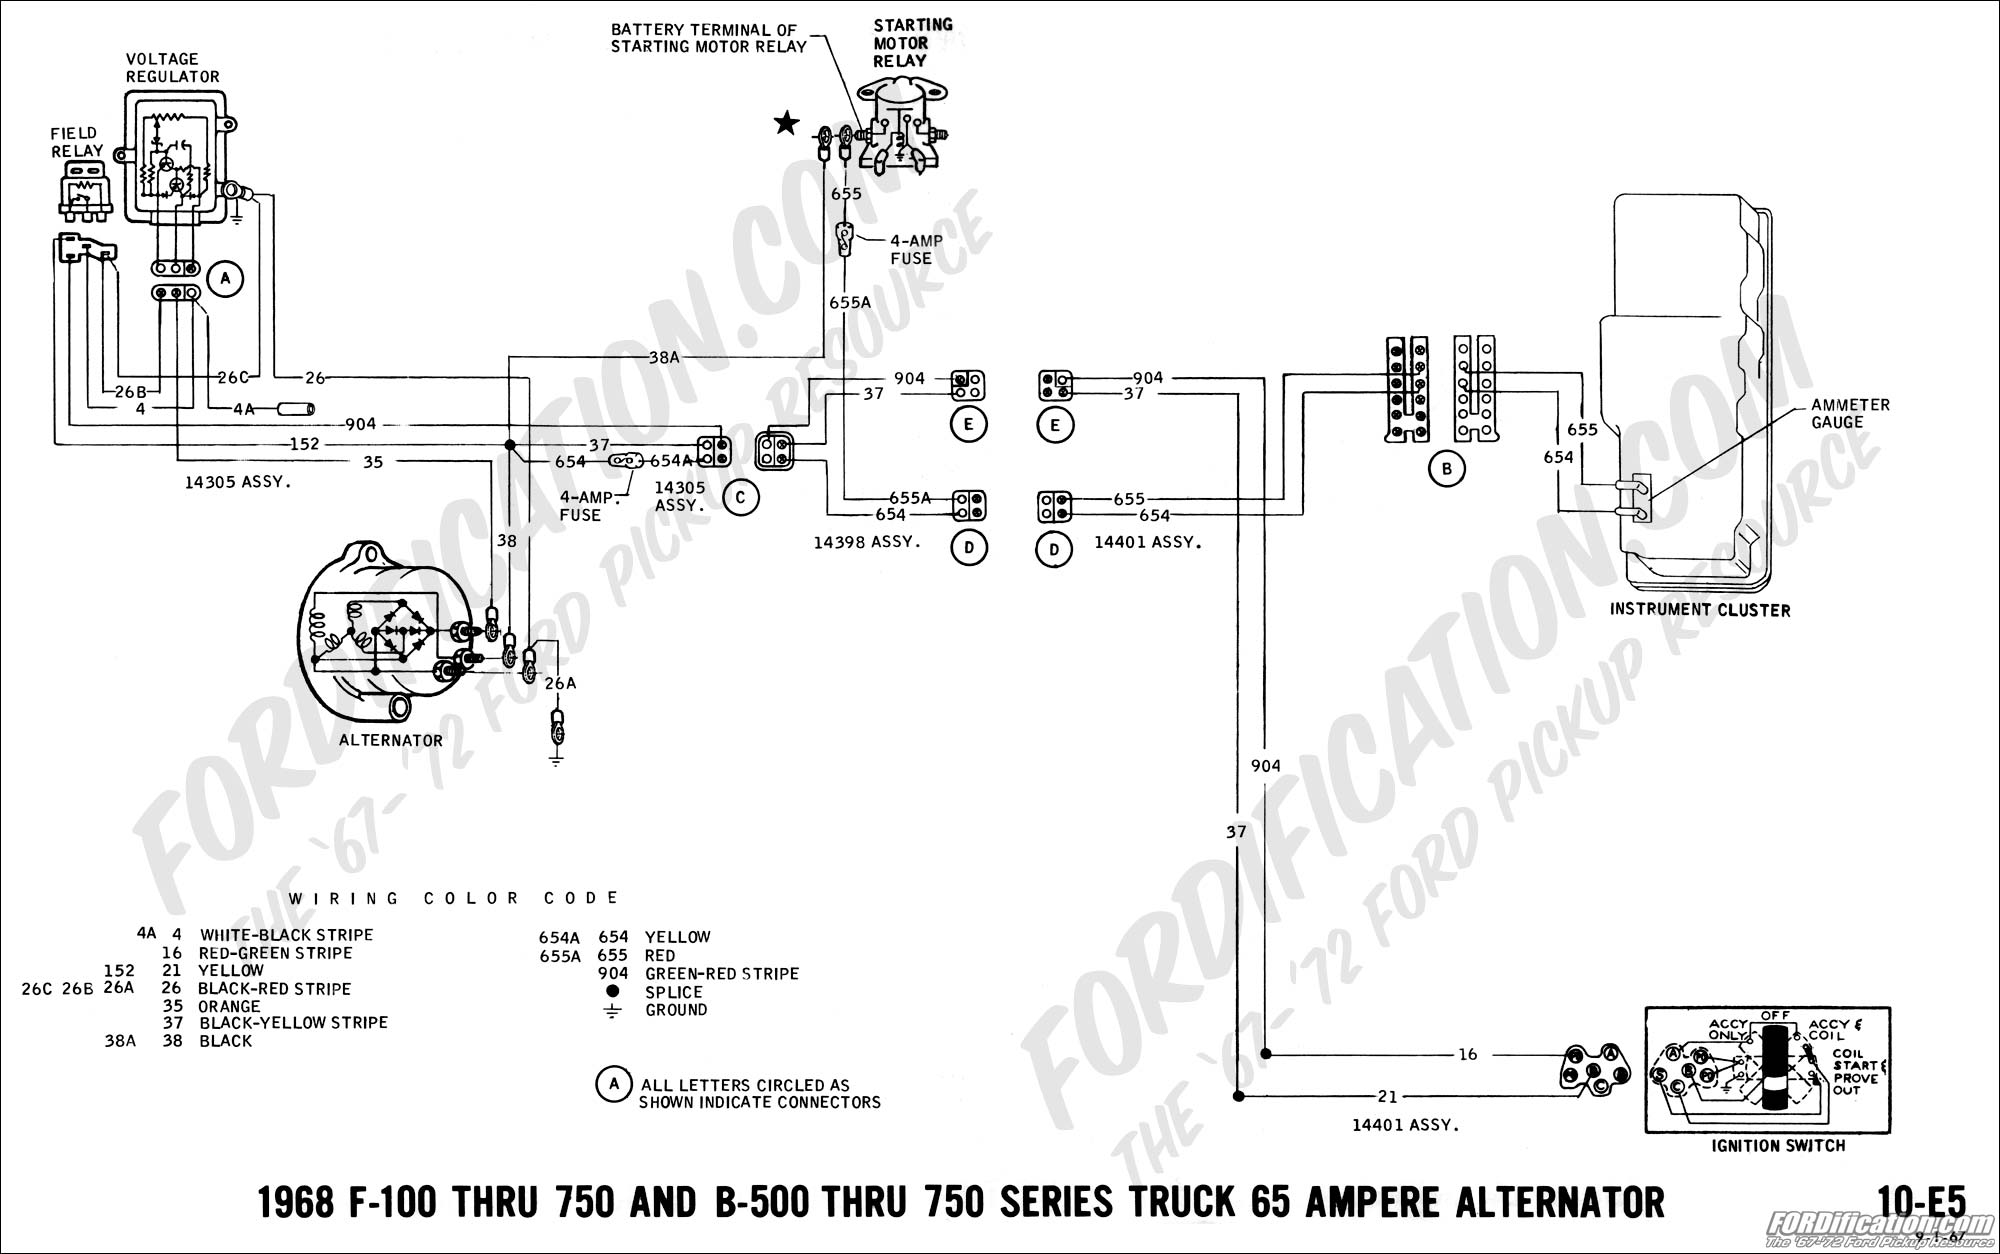 68 07 ford truck technical drawings and schematics section h wiring ford alternator wiring schematic at bayanpartner.co